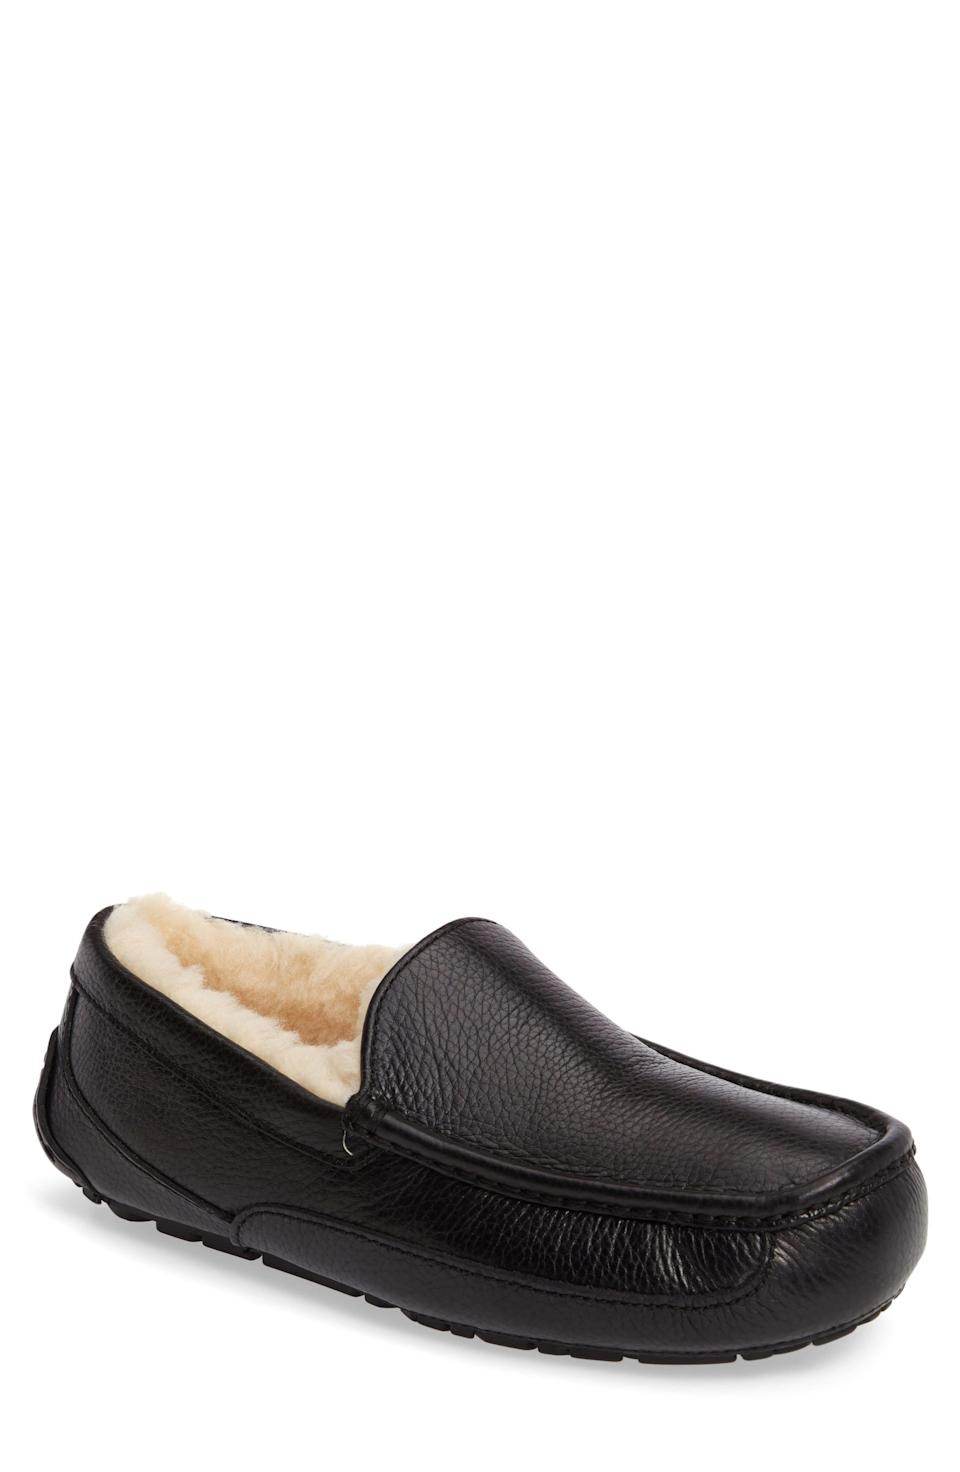 """<p><strong>UGG\u003CSUP\u003E\u003C\u002FSUP\u003E</strong></p><p>nordstrom.com</p><p><strong>$119.95</strong></p><p><a href=""""https://go.redirectingat.com?id=74968X1596630&url=https%3A%2F%2Fwww.nordstrom.com%2Fs%2Fugg-ascot-leather-slipper-men%2F2820668&sref=https%3A%2F%2Fwww.menshealth.com%2Ftechnology-gear%2Fg35184277%2Fvalentines-day-gifts-for-men%2F"""" rel=""""nofollow noopener"""" target=""""_blank"""" data-ylk=""""slk:BUY IT HERE"""" class=""""link rapid-noclick-resp"""">BUY IT HERE</a></p><p>UGGs aren't just for basics anymore. These classic leather slippers will be a welcome addition to his work-from-home shoe collection.</p><p><strong><a href=""""https://www.menshealth.com/style/g28541900/best-slippers-for-men/"""" rel=""""nofollow noopener"""" target=""""_blank"""" data-ylk=""""slk:Check Out the Best Slippers for Men"""" class=""""link rapid-noclick-resp"""">Check Out the Best Slippers for Men</a></strong></p>"""